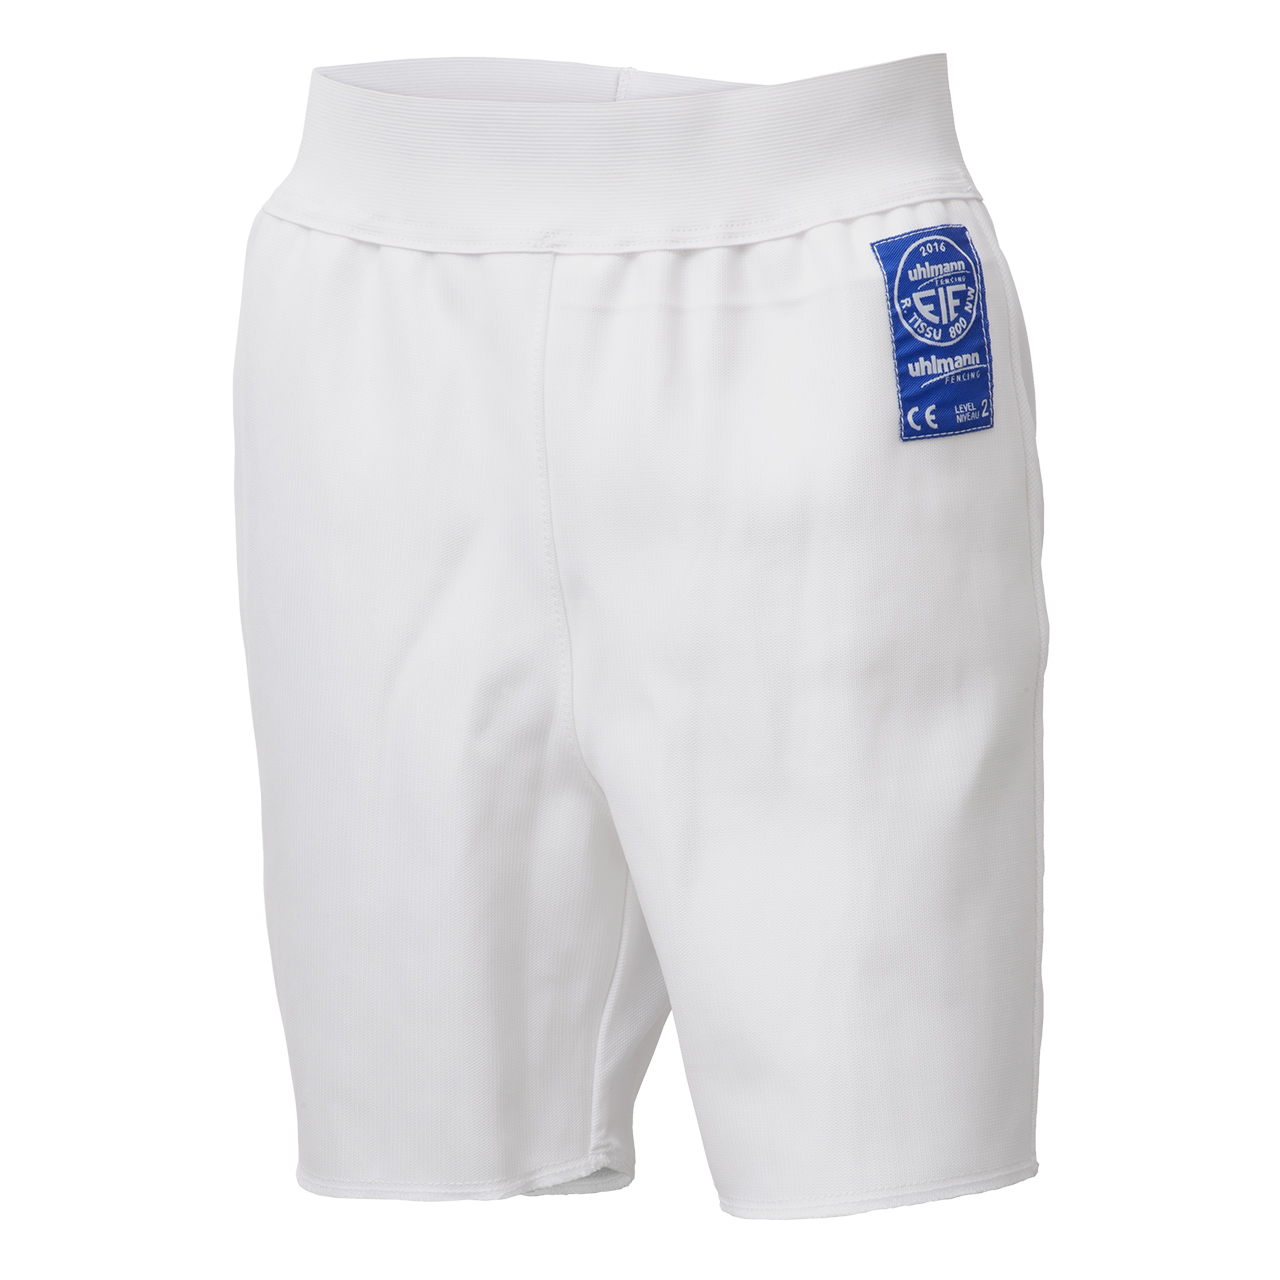 protection shorts women 800N